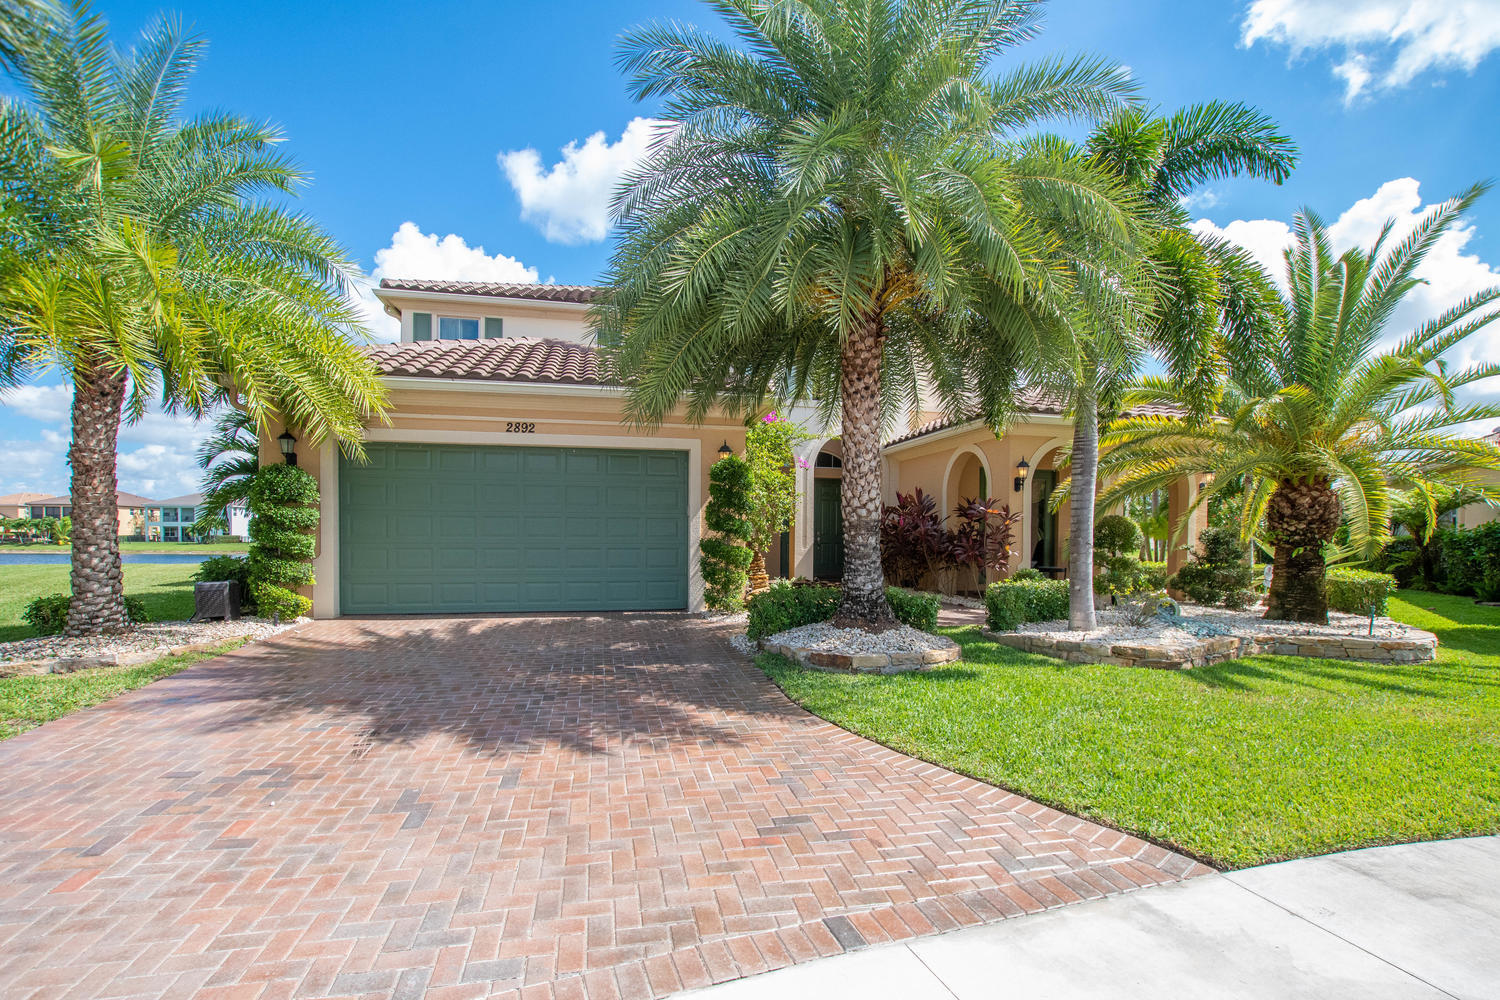 2892 Payson Way, Wellington, Florida 33414, 5 Bedrooms Bedrooms, ,4.1 BathroomsBathrooms,Single Family,For Rent,Payson,RX-10571073